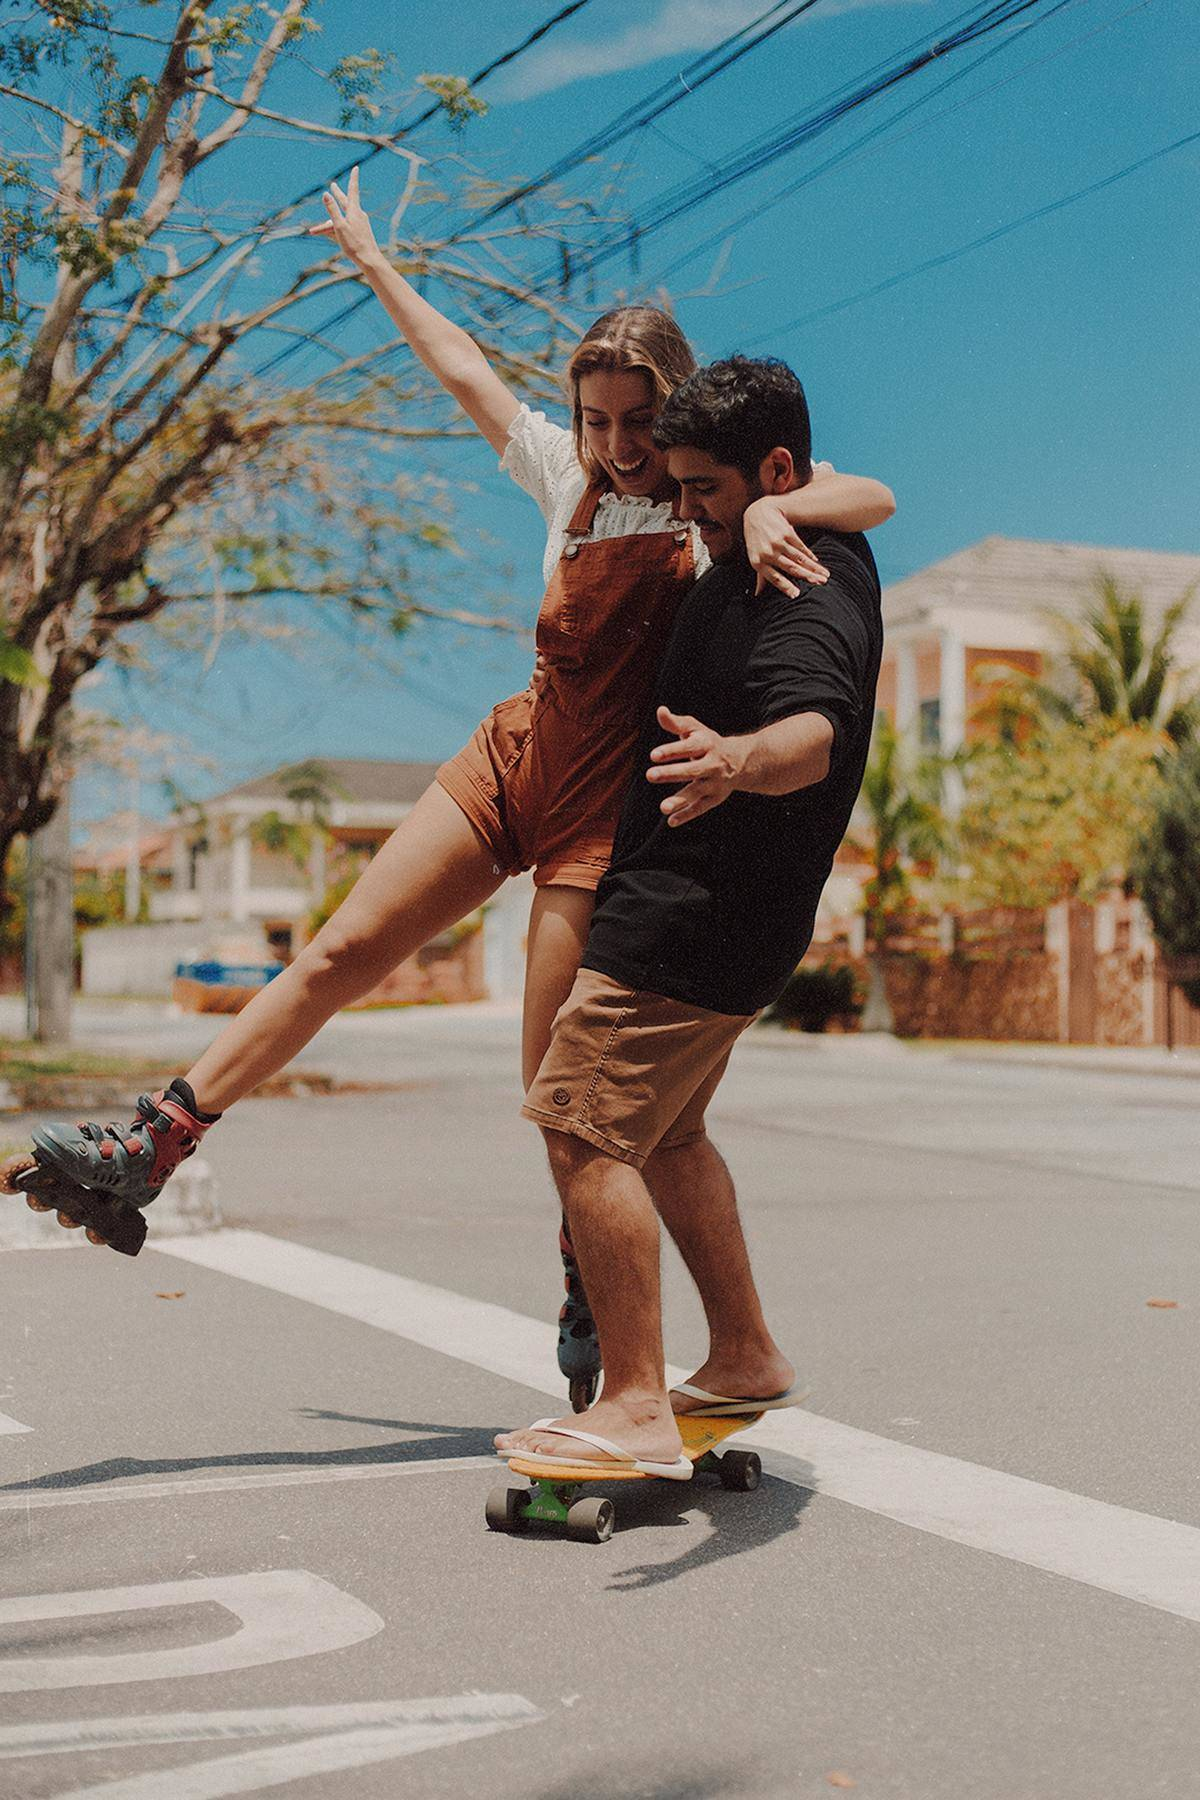 a couple skateboarding together